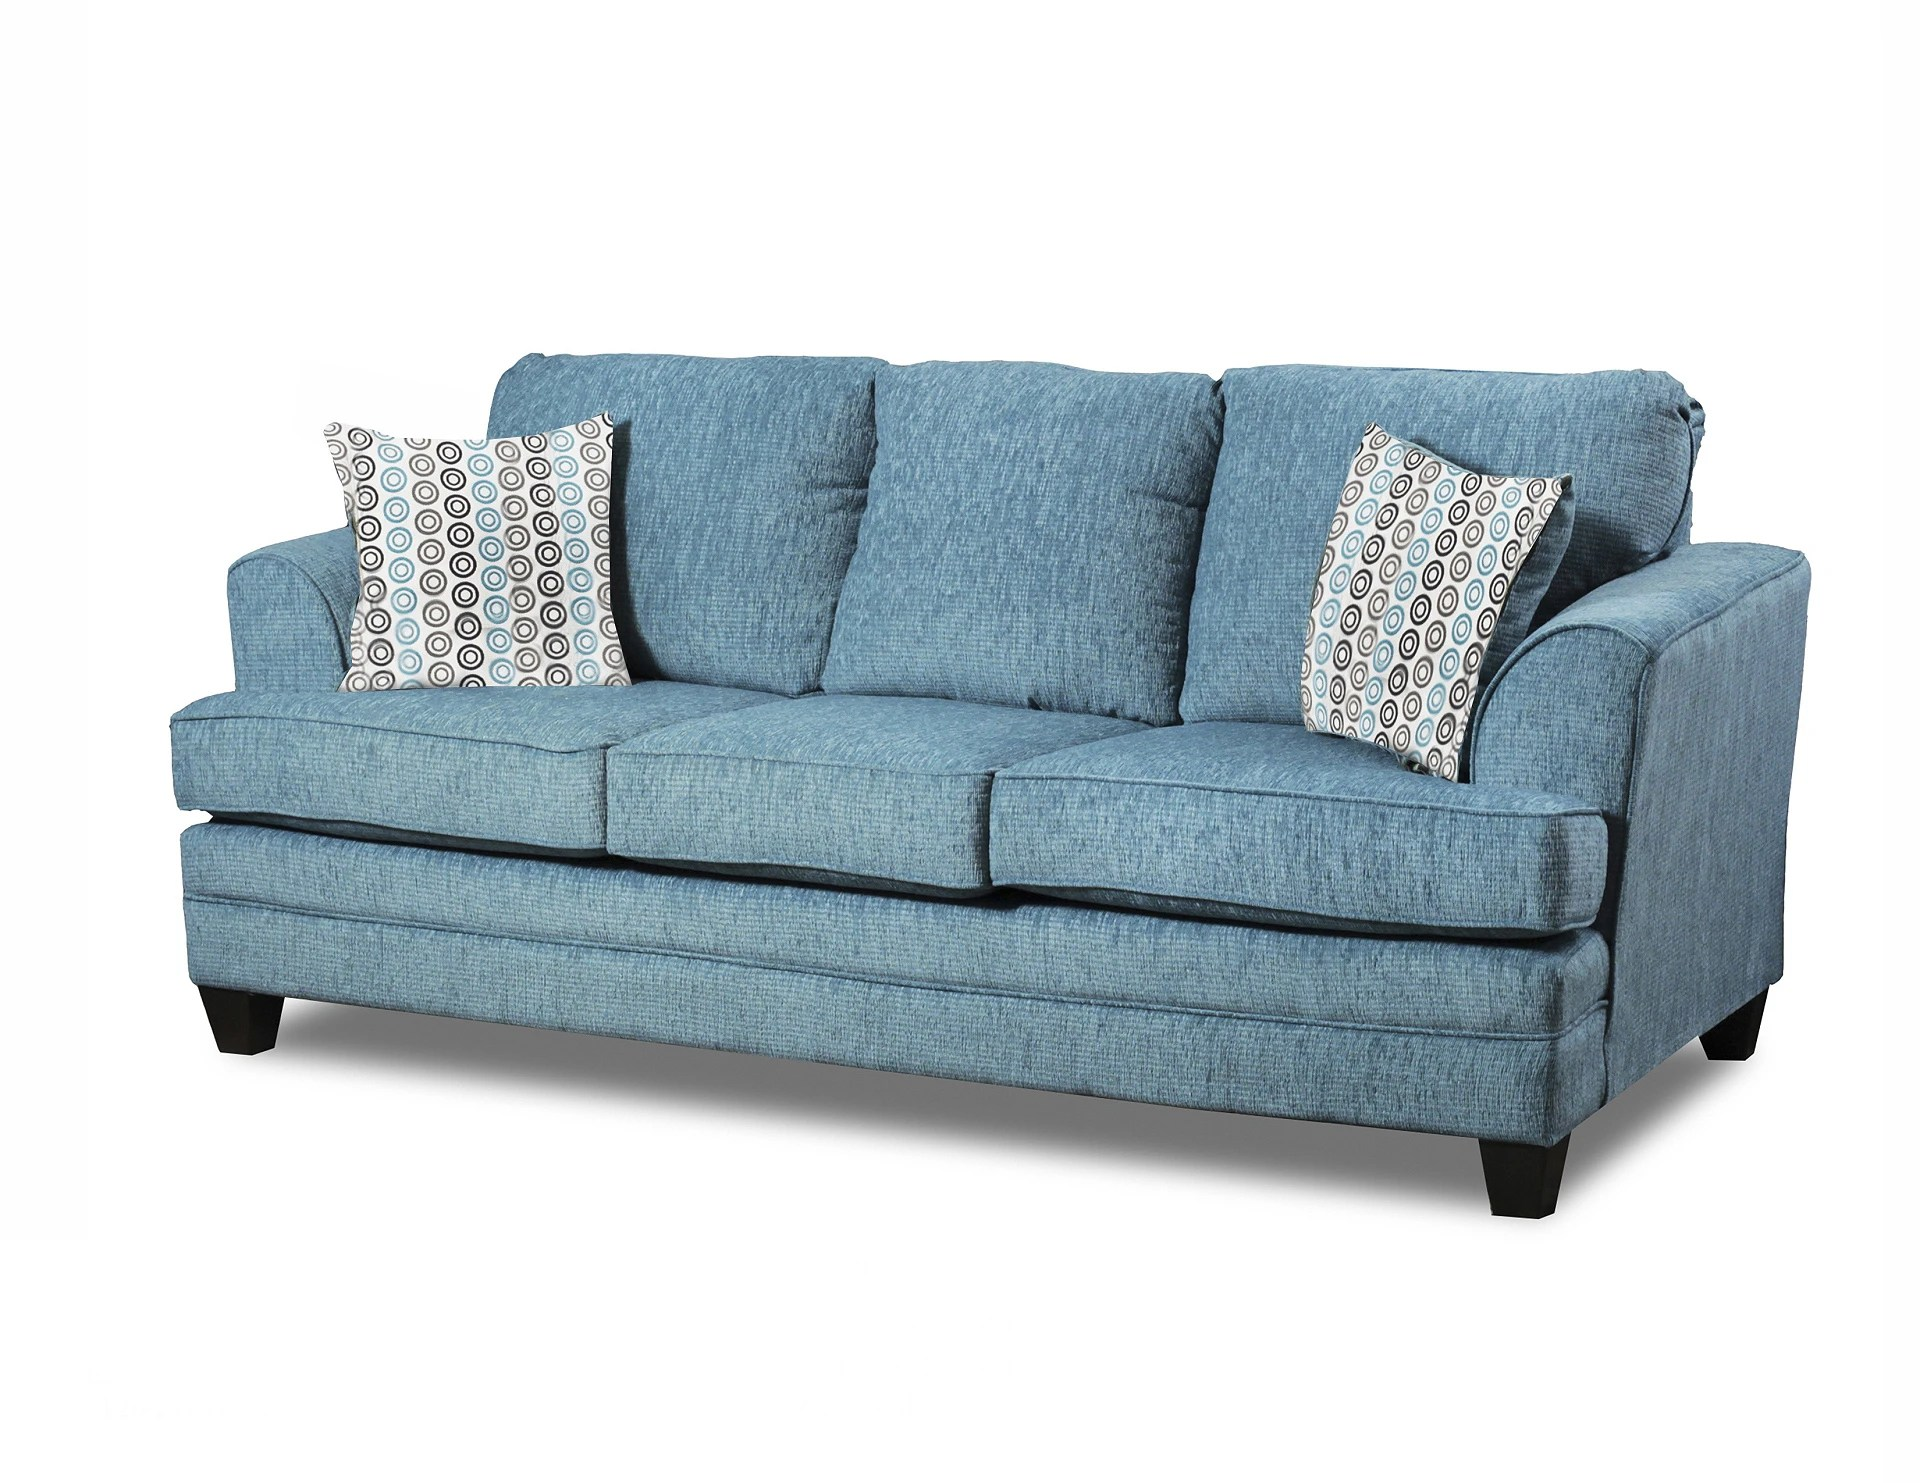 Made Sofa Reviews Chelsea Home 295100 S Hrt